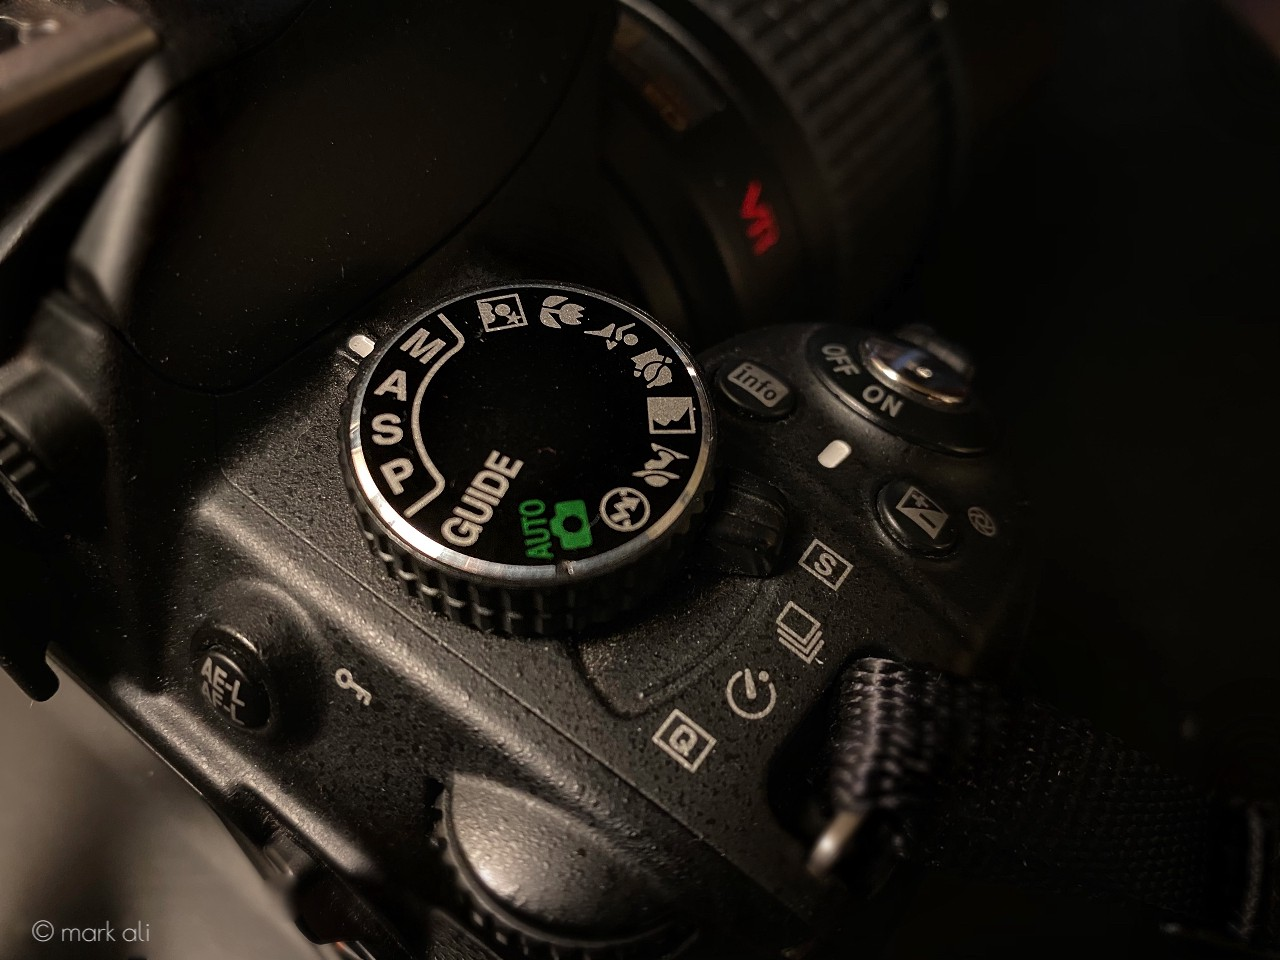 A mode dial on top of a camera.